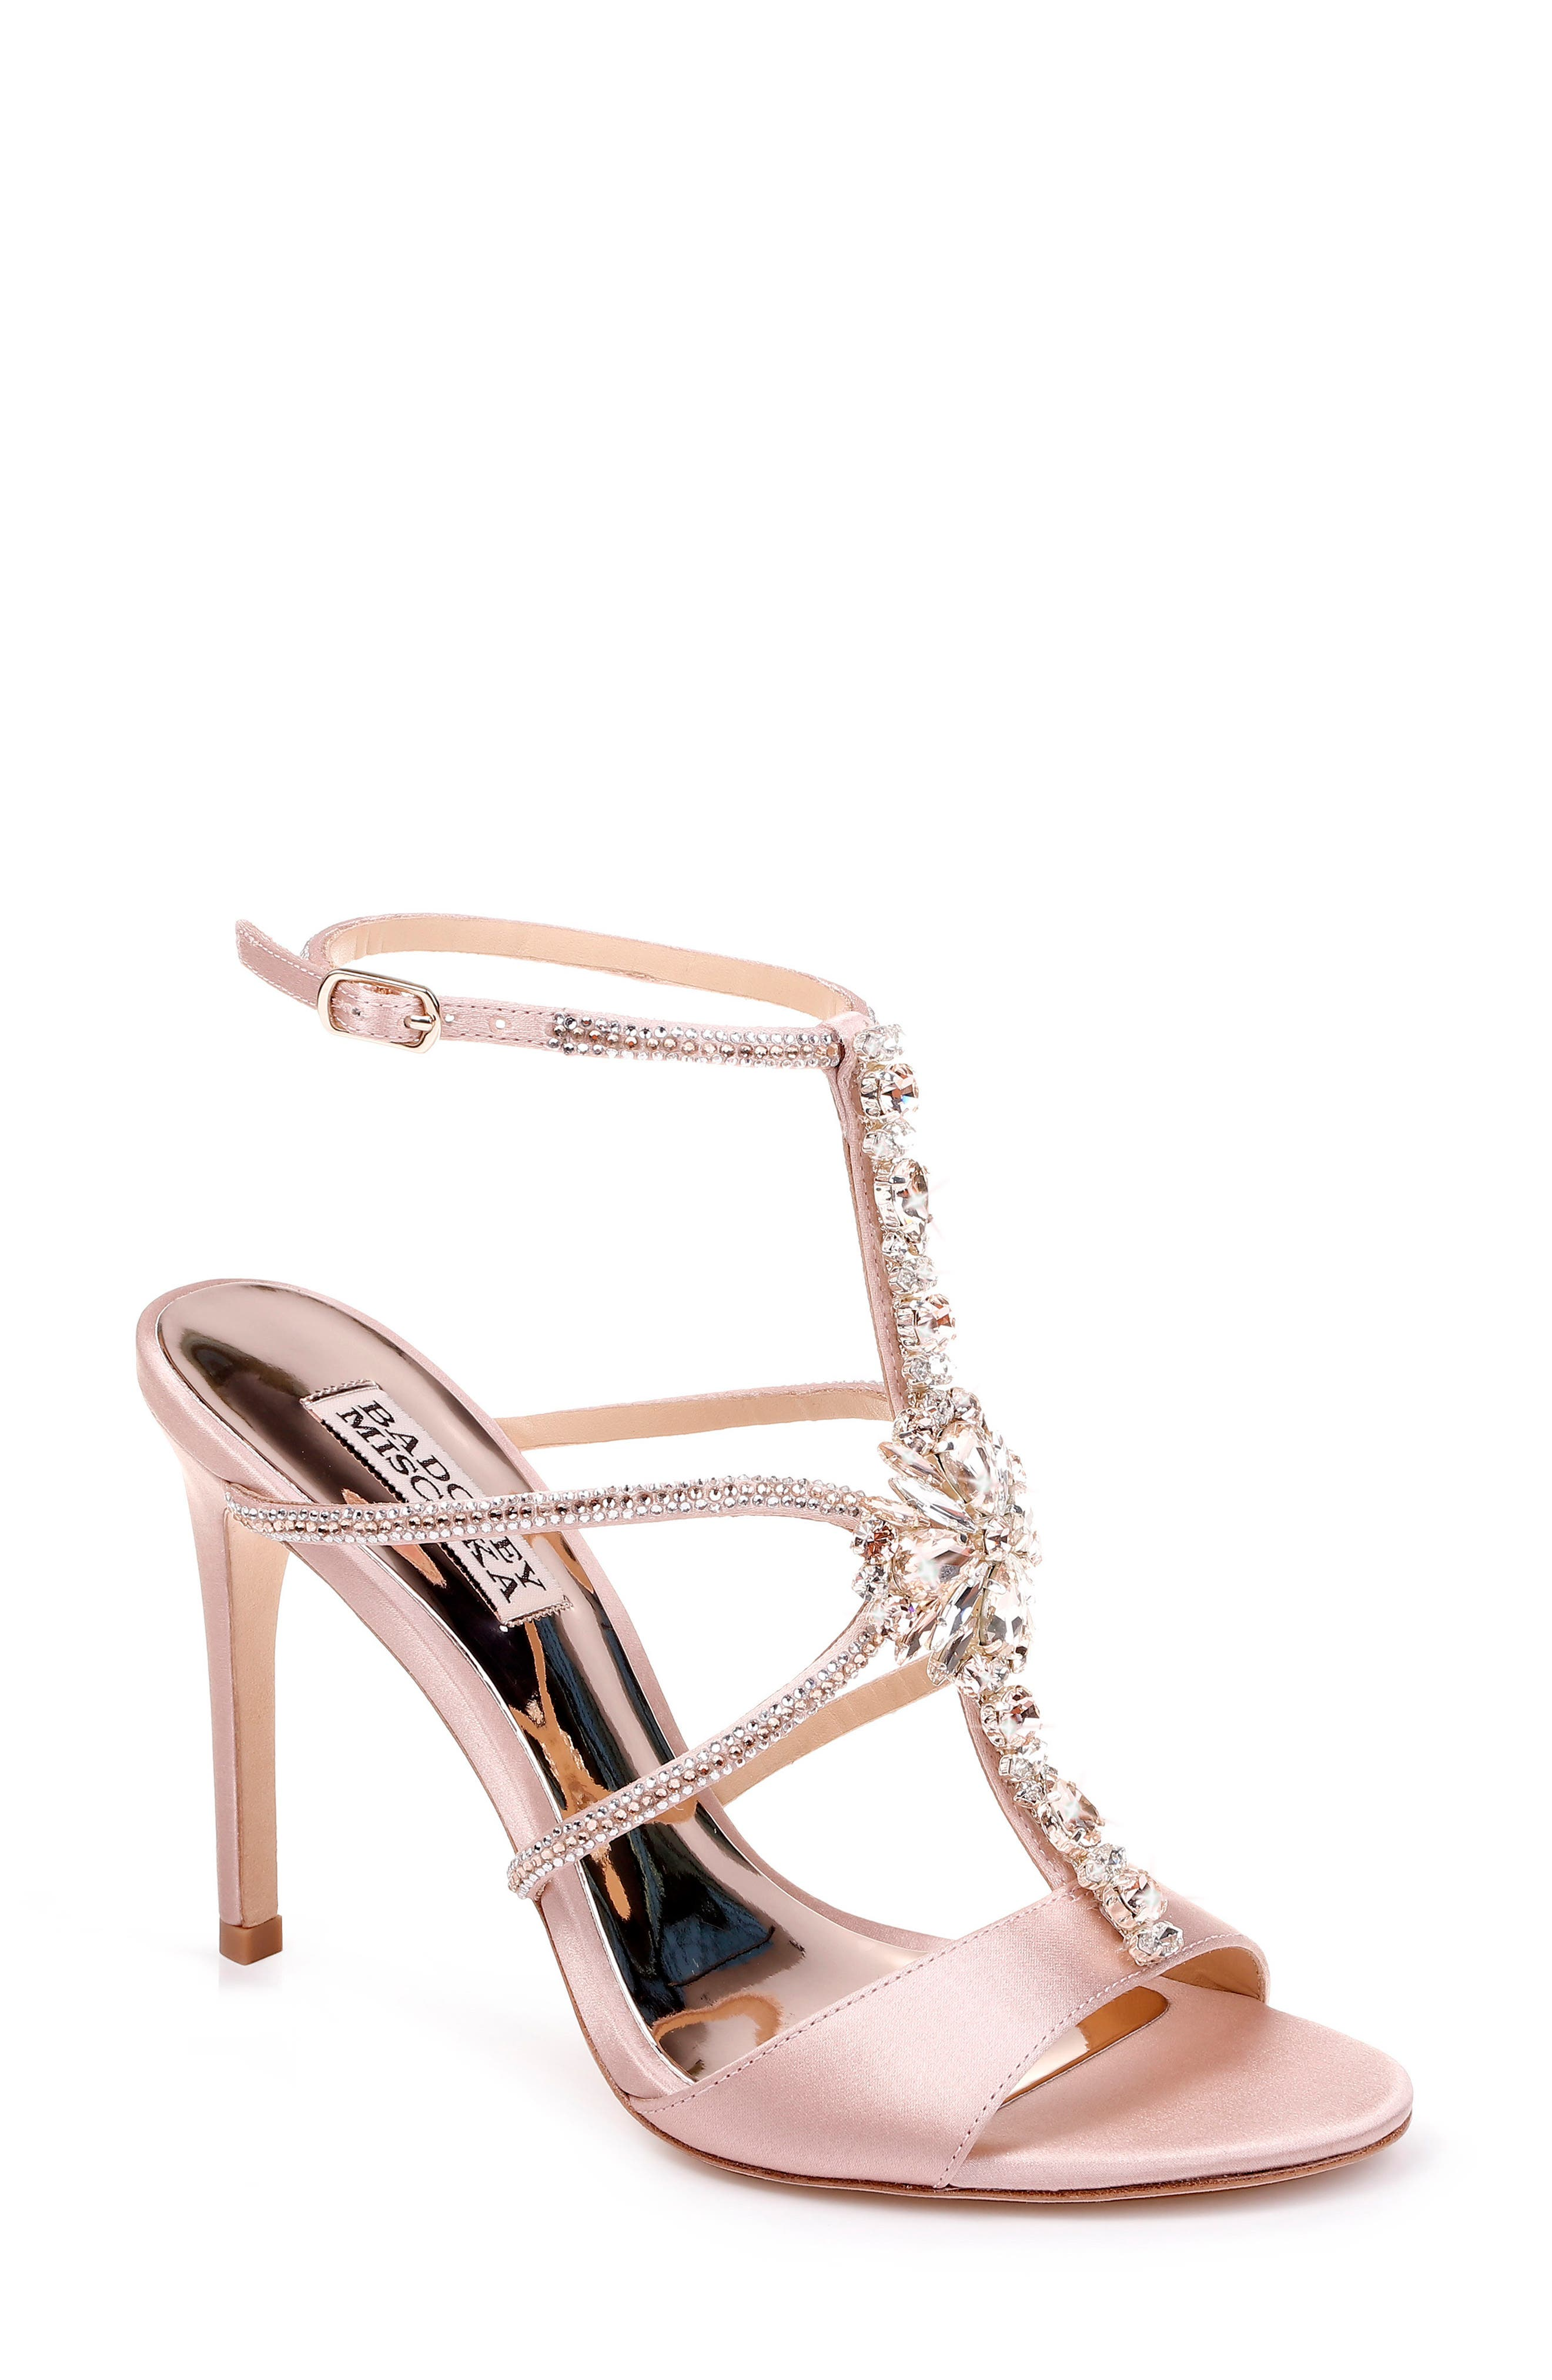 BADGLEY MISCHKA COLLECTION, Badgley Mischka Faye Ankle Strap Sandal, Main thumbnail 1, color, SOFT BLUSH SATIN